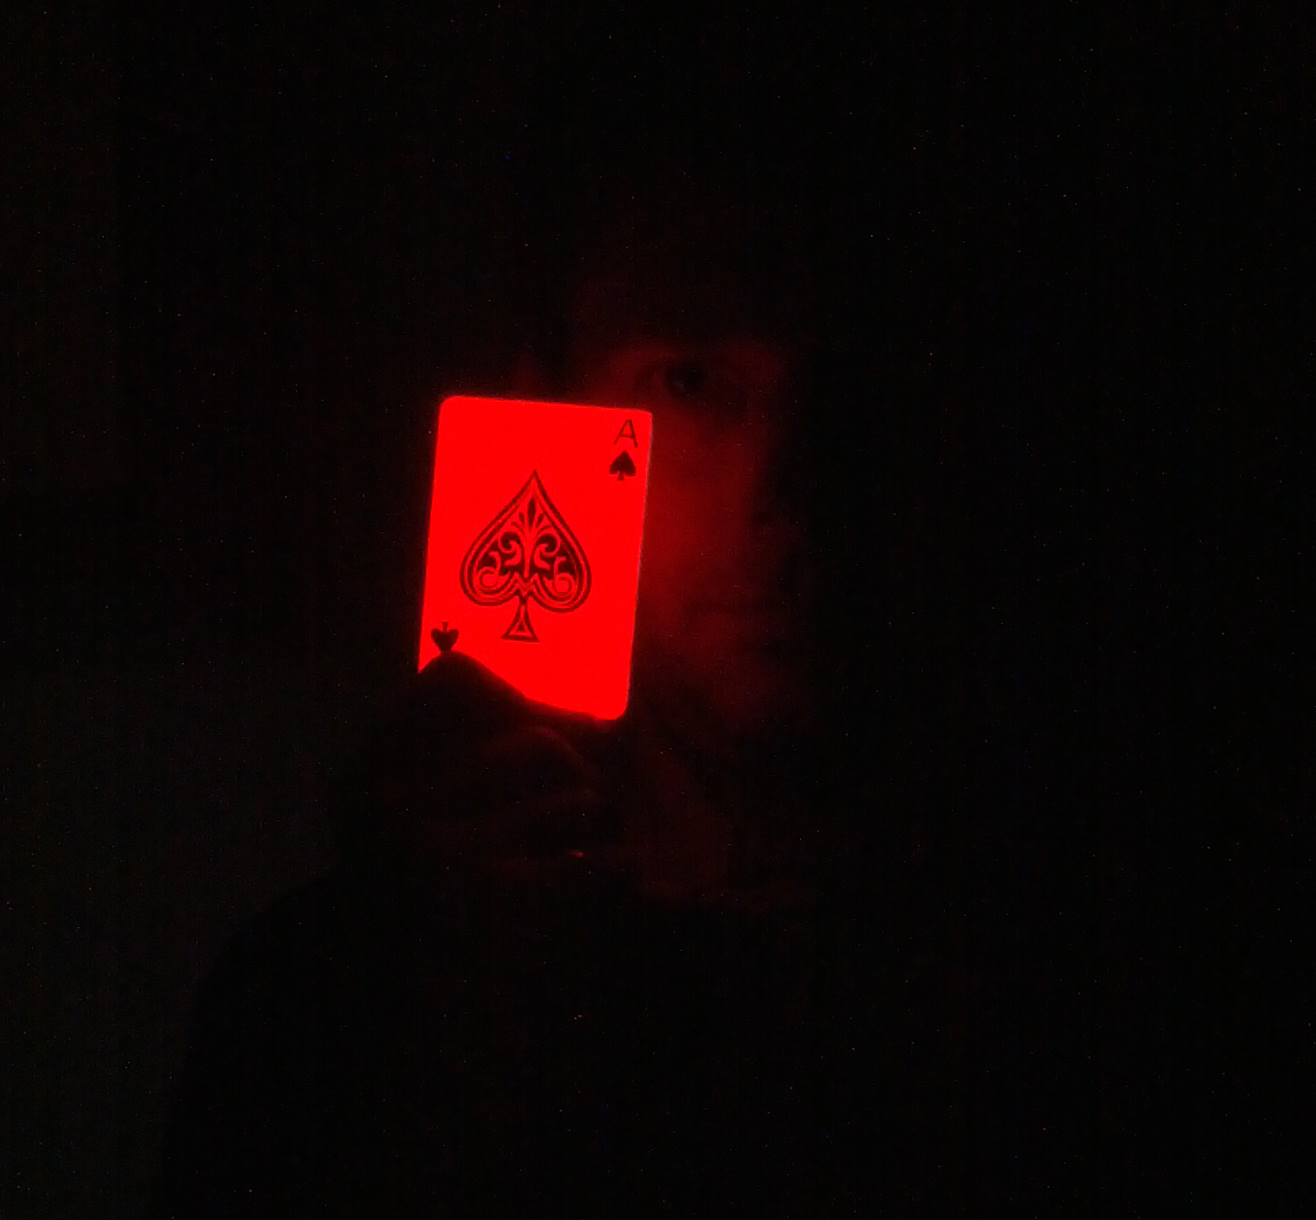 Glowing Card in the Dark